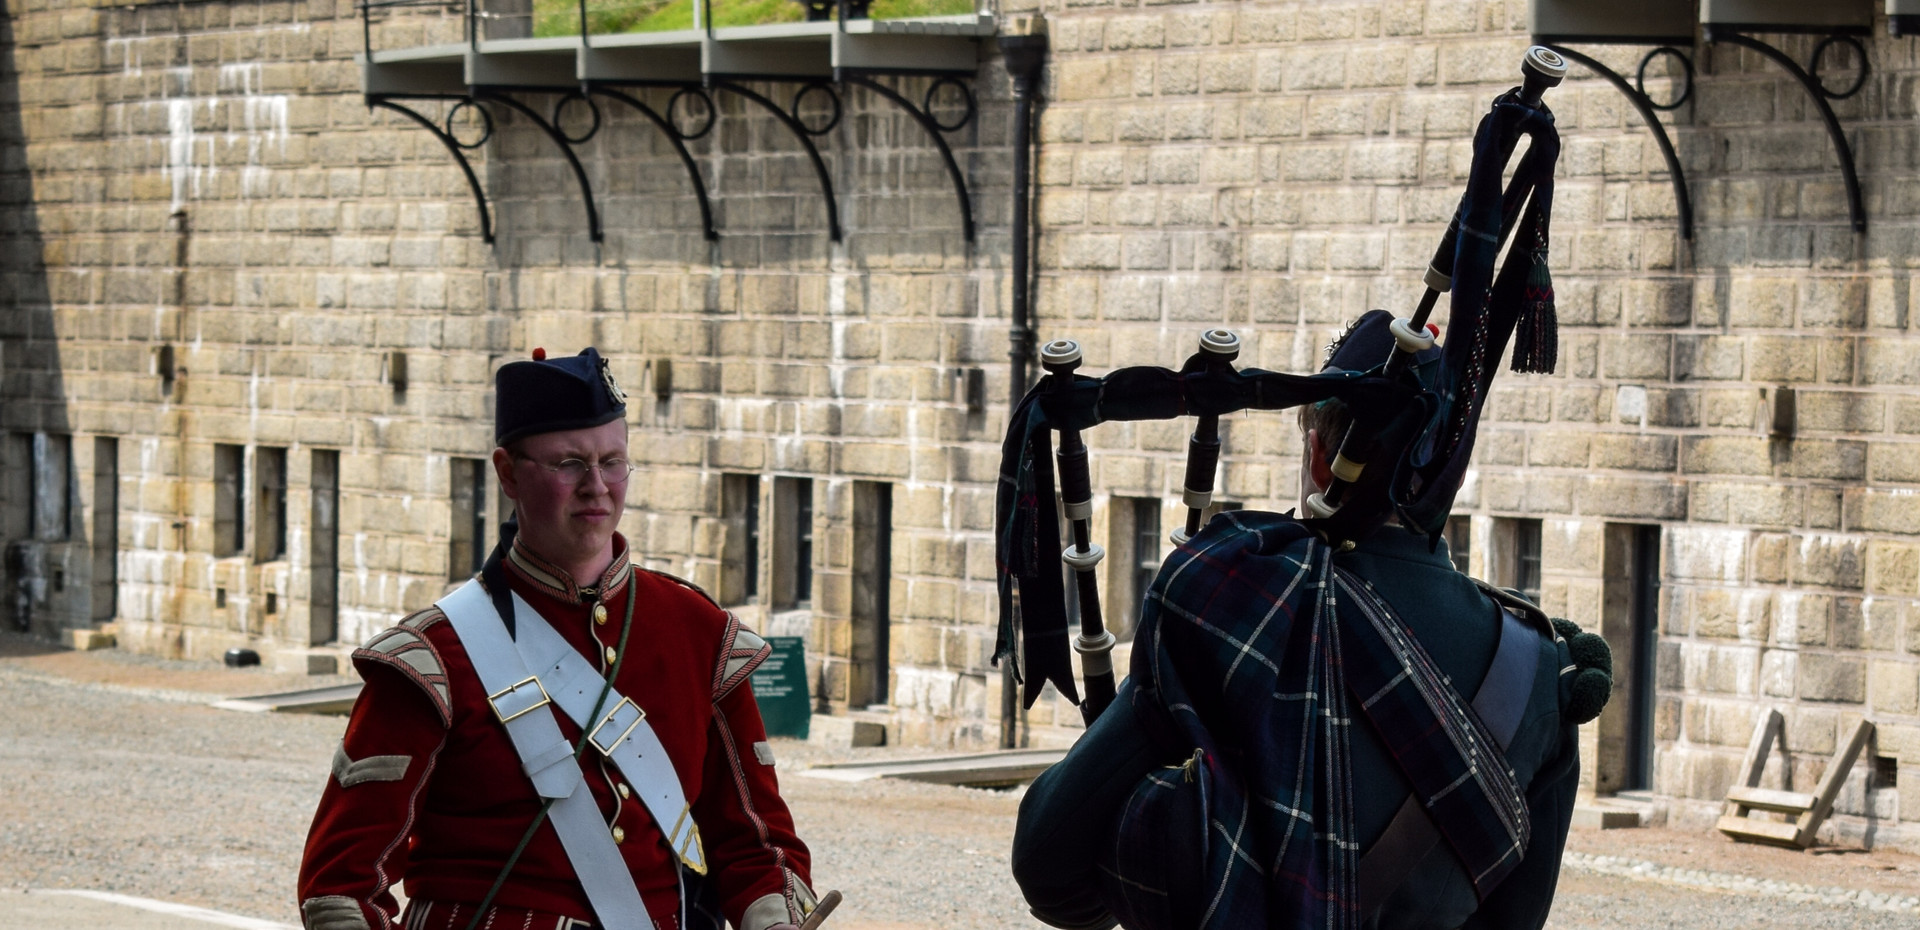 Visit the Citadell aka fort George a National Historic Site of Canada